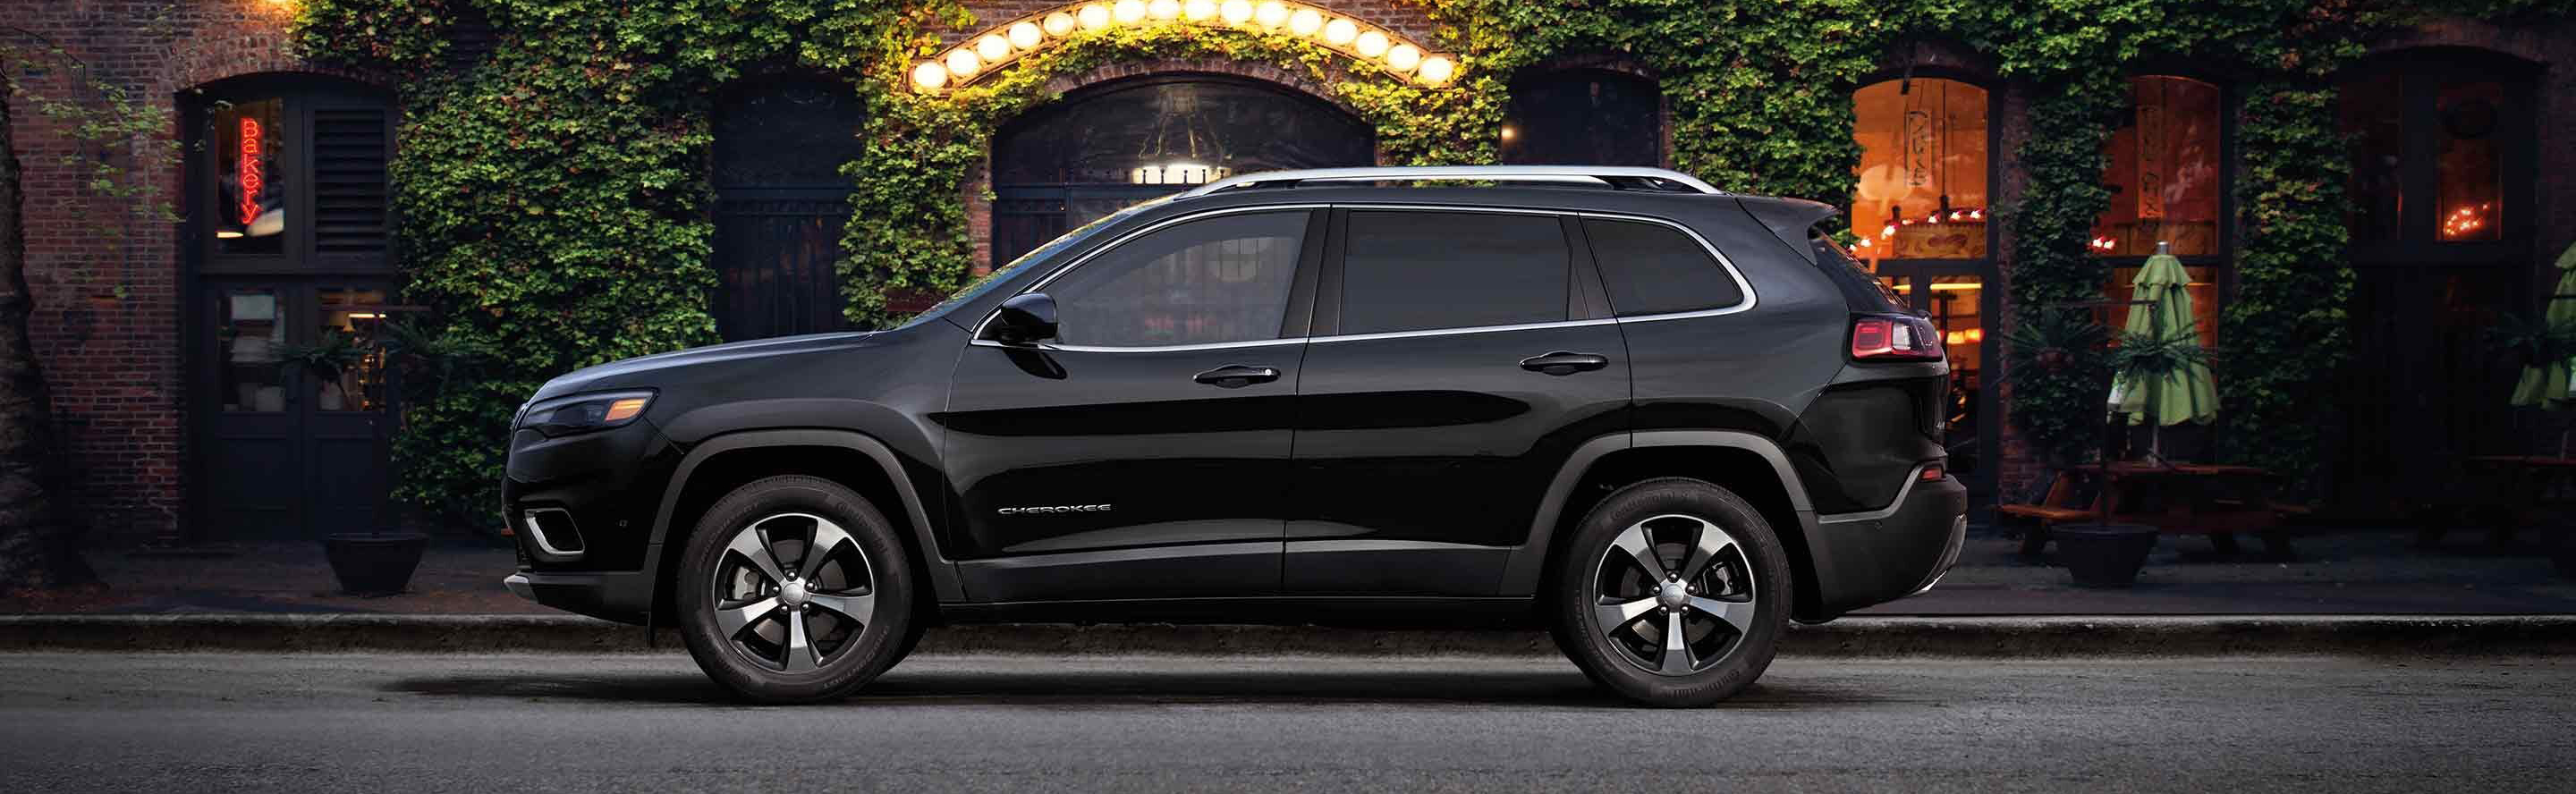 the side of a black 2019 jeep cherokee